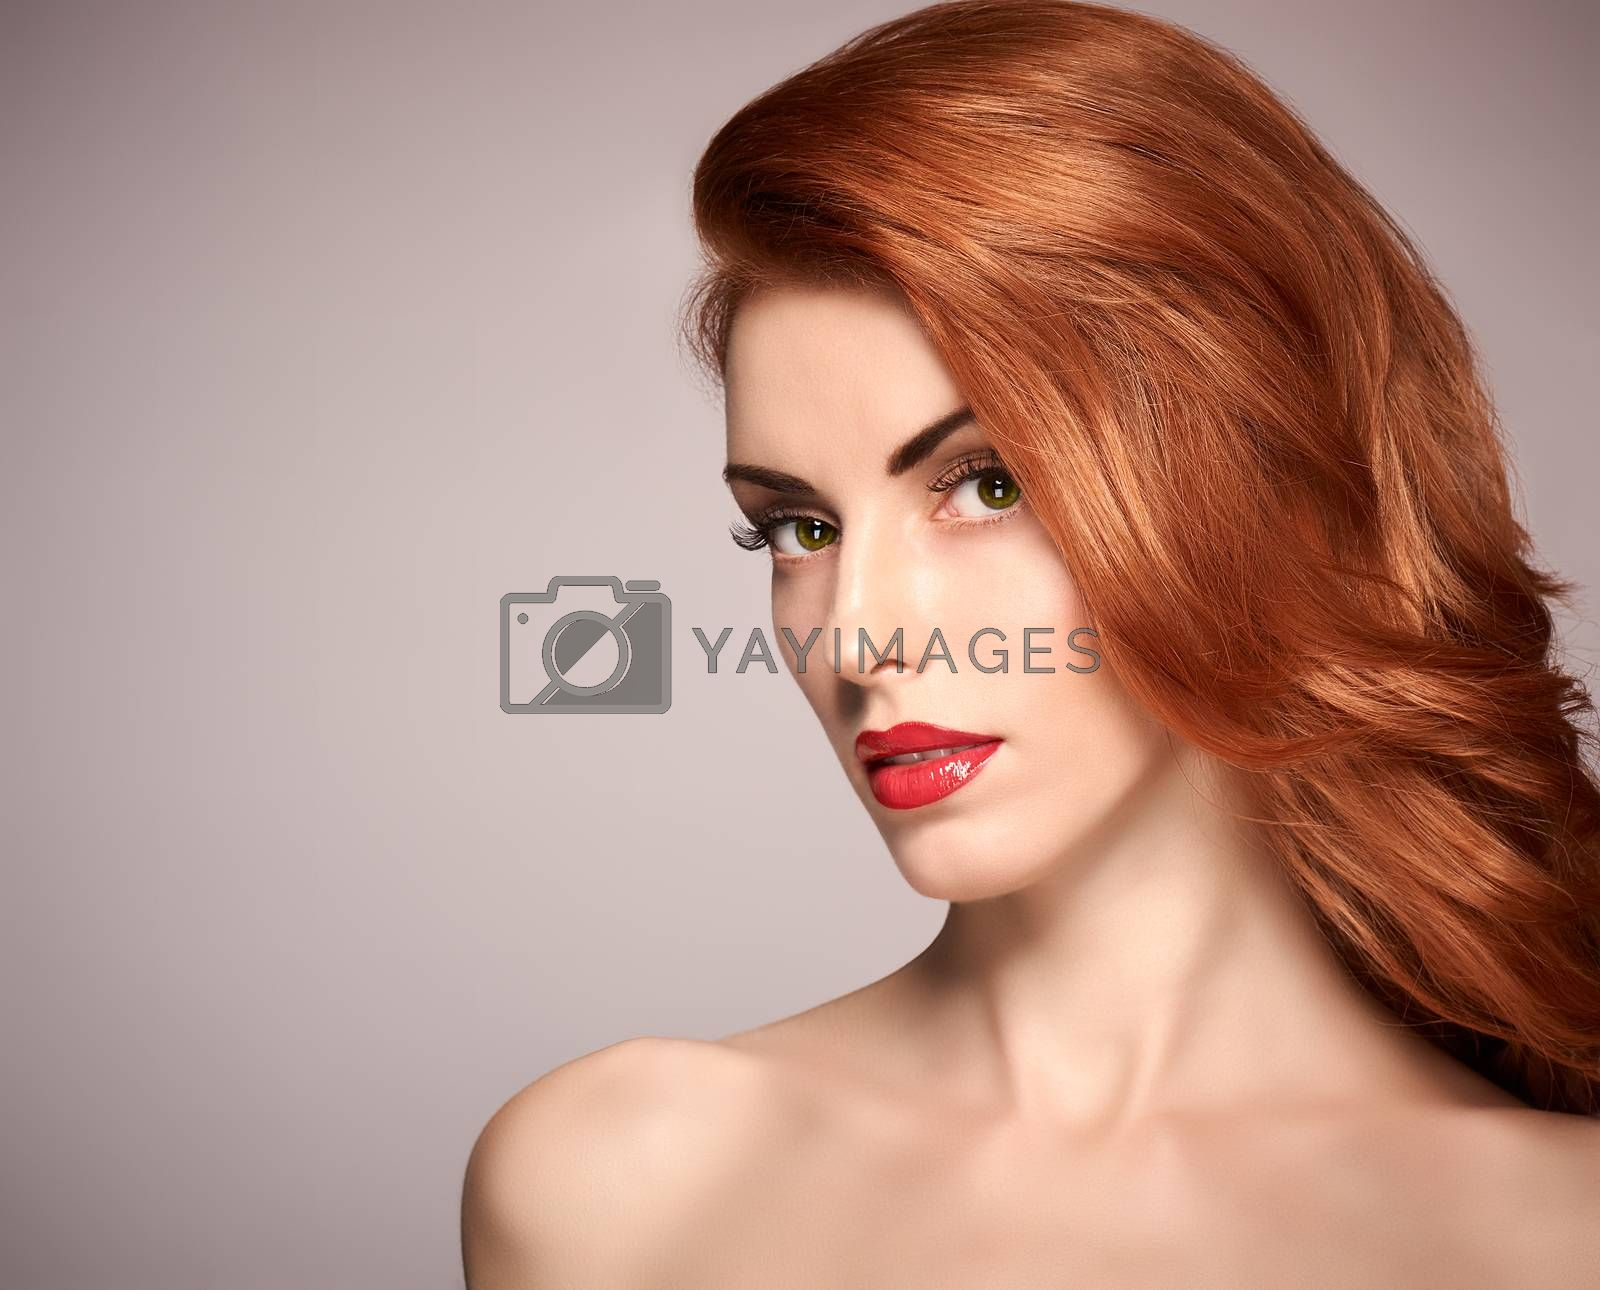 Beauty portrait nude woman, eyelashes, perfect skin, natural makeup, red lips, fashion. Gorgeous sensual attractive pretty redhead sexy model girl, shiny wavy hair. People face closeup, spa, copyspace